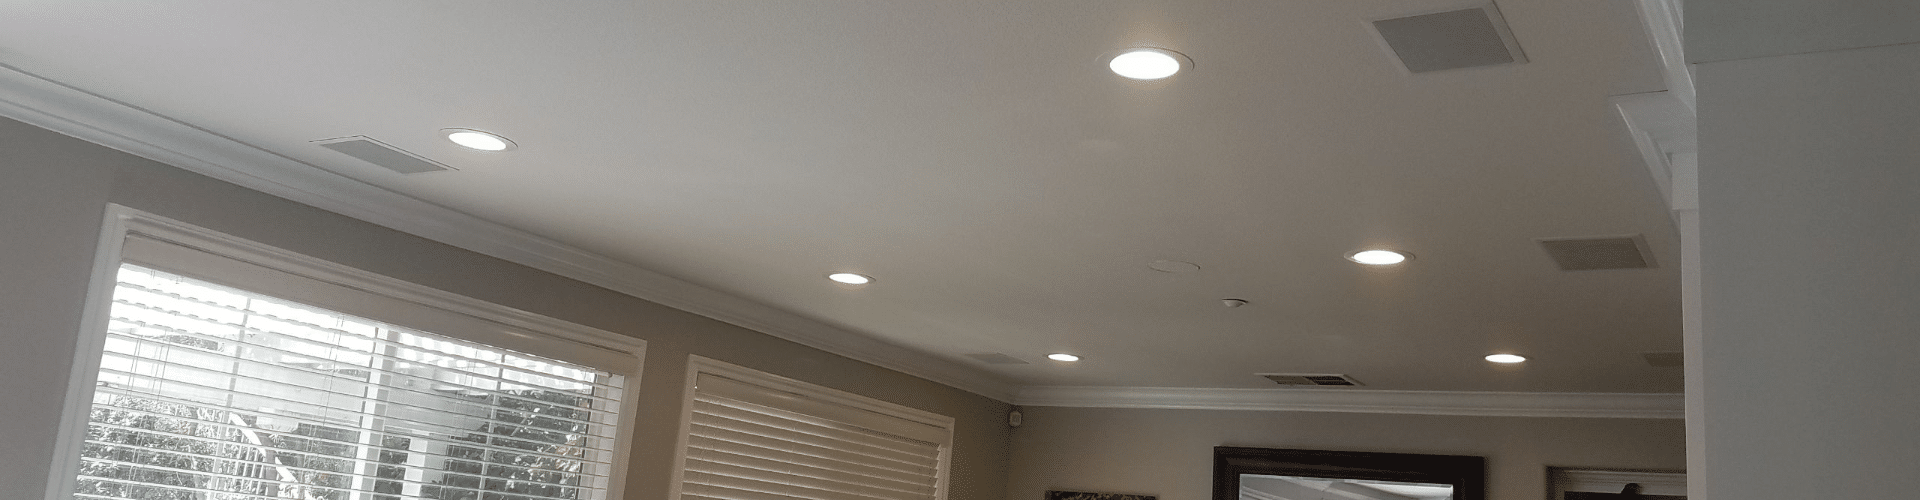 7 best led recessed lights may 2021